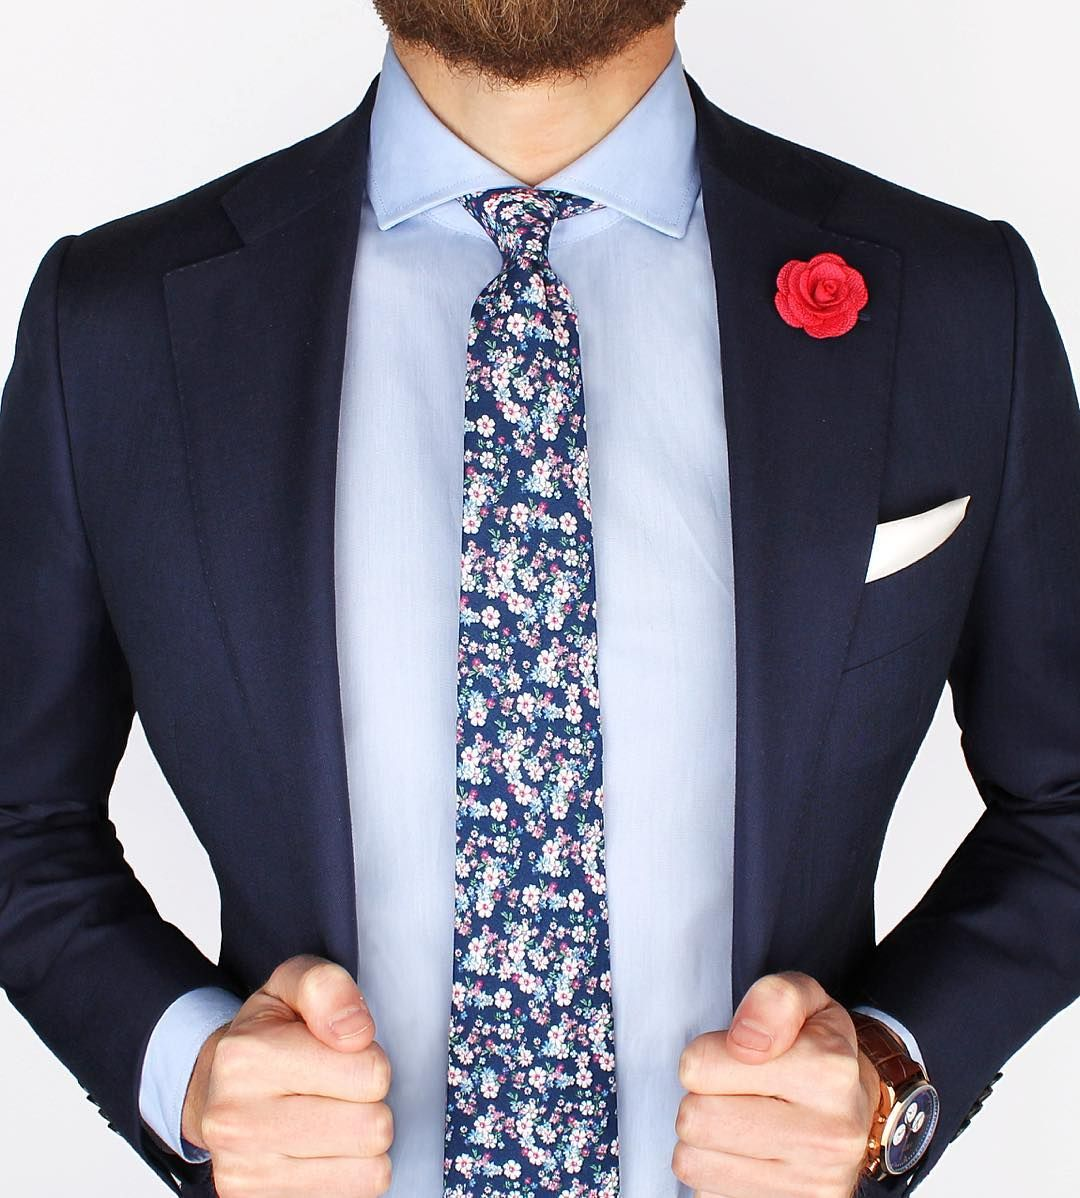 The new Admiral floral tie, Pink microfiber lapel pin and ...